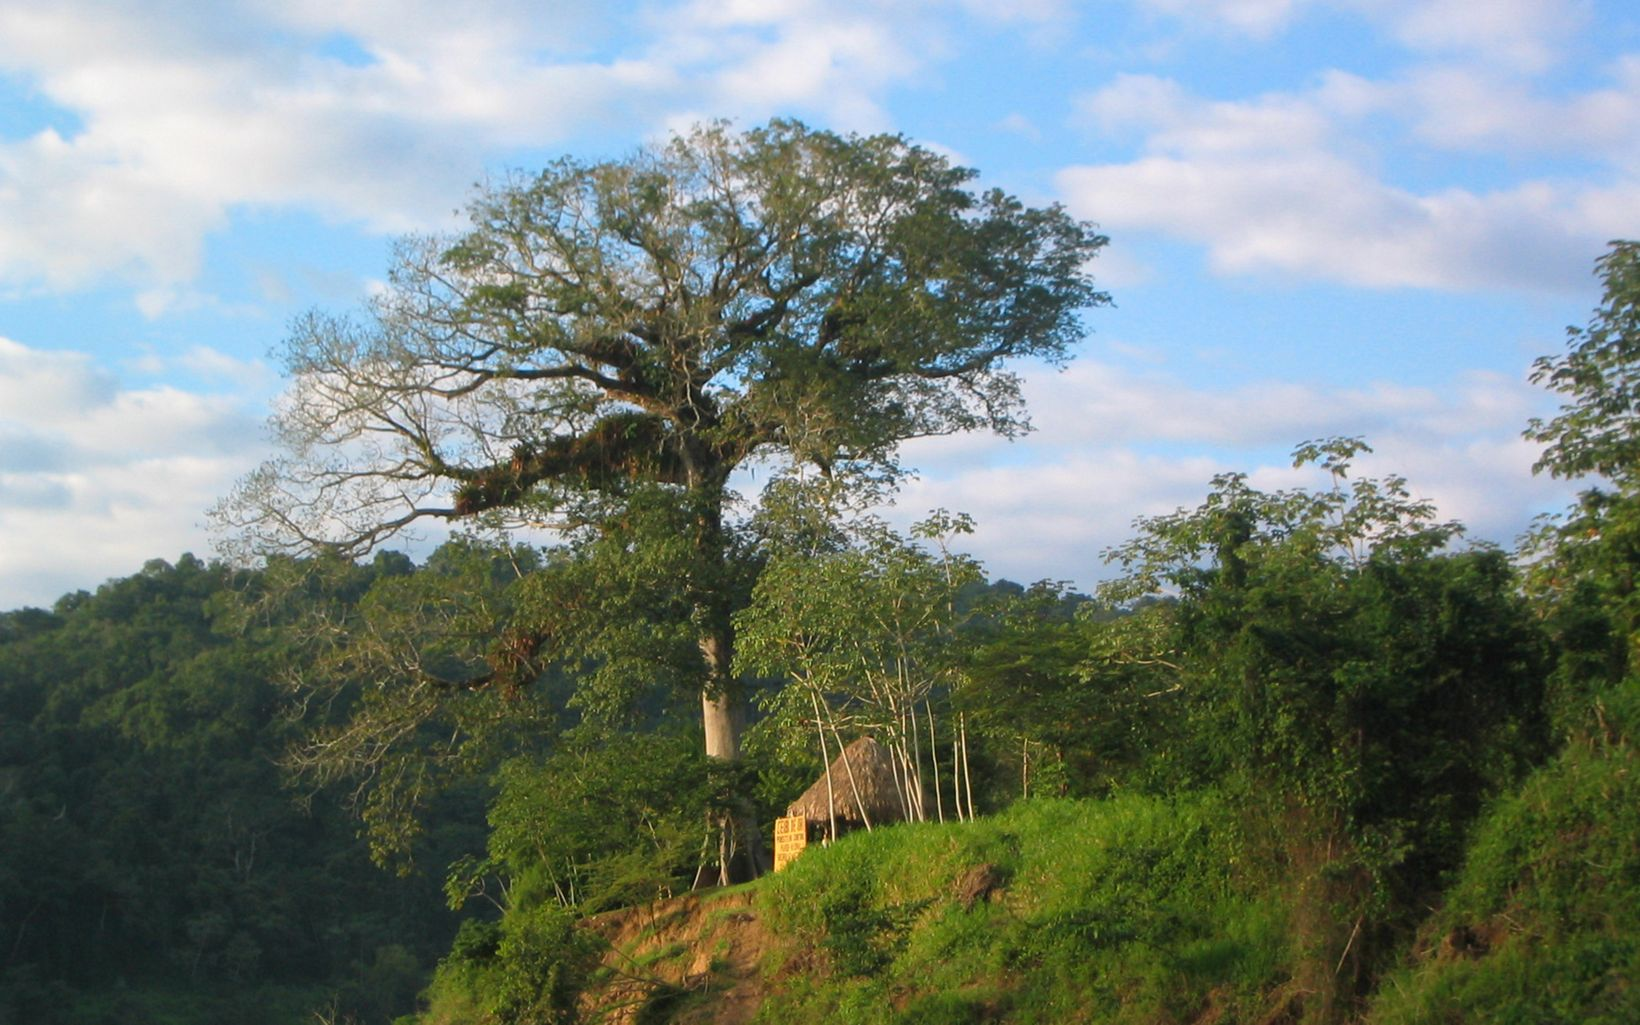 Guatemala's national tree, grows in the Maya Biosphere Reserve of Guatemala.